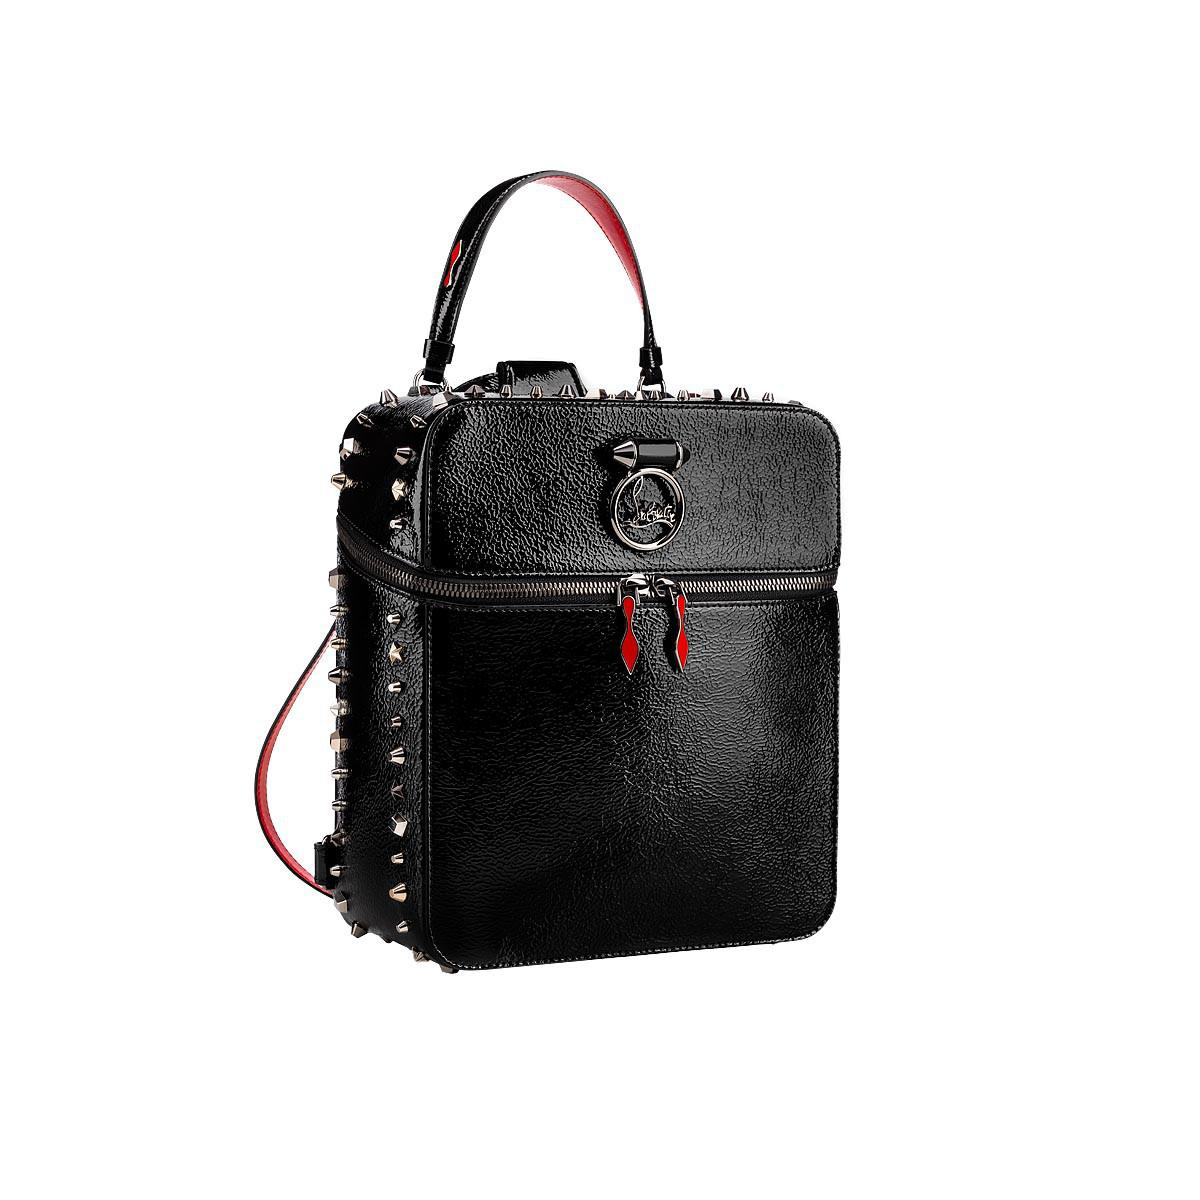 b66a979cb2f8 Lyst - Christian Louboutin Rubylou Backpack in Black